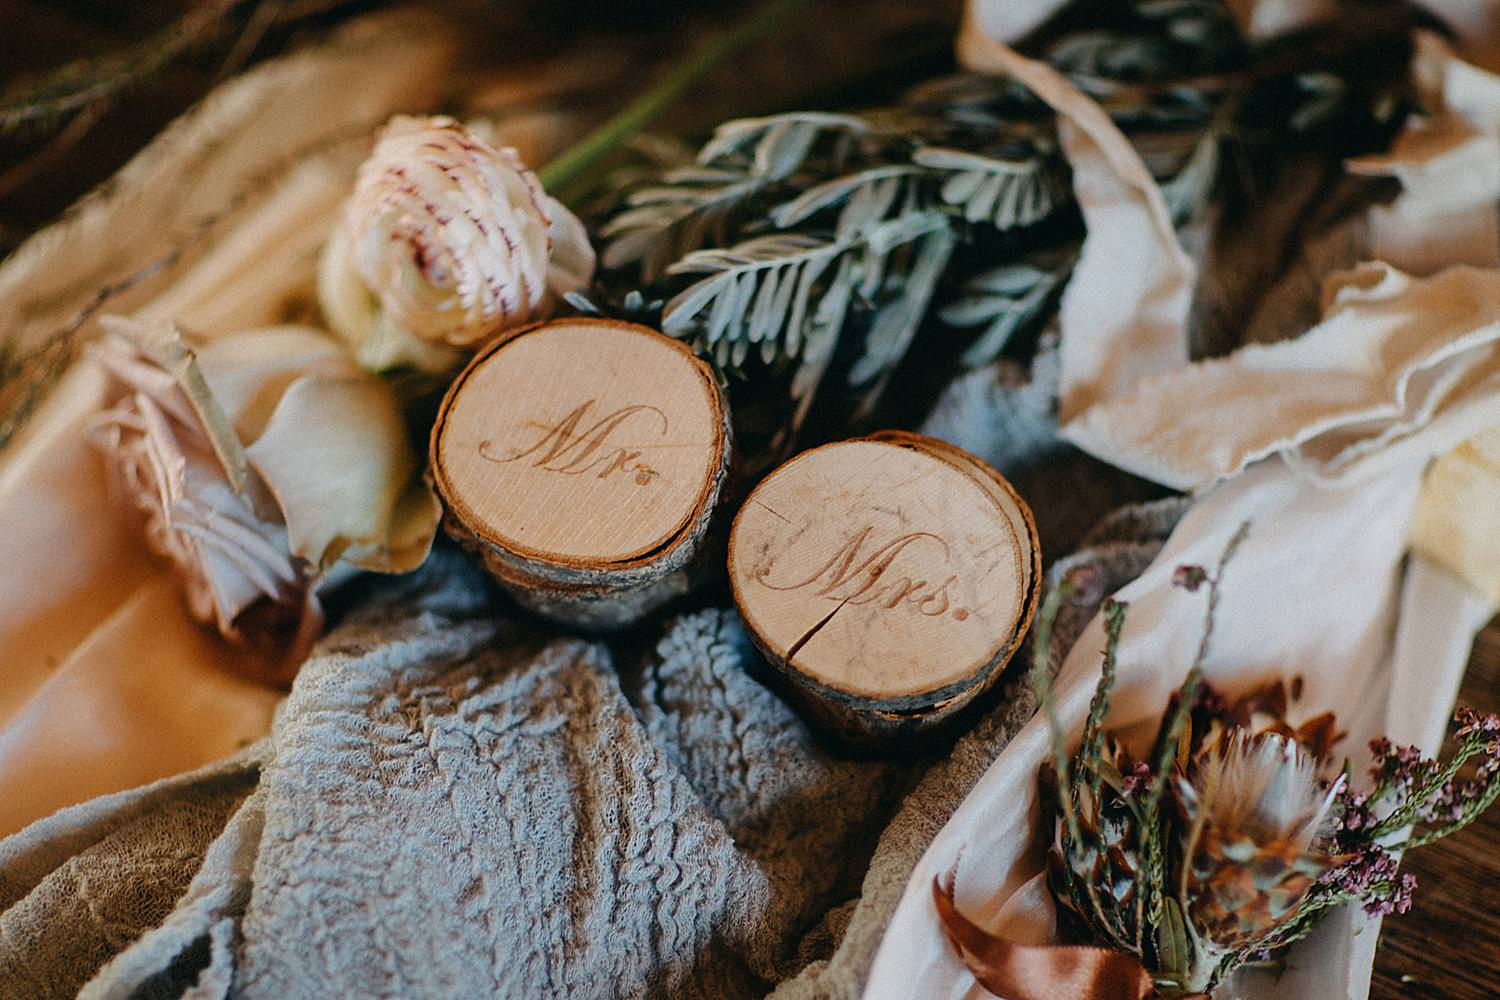 detail wooden wedding ring boxes on table